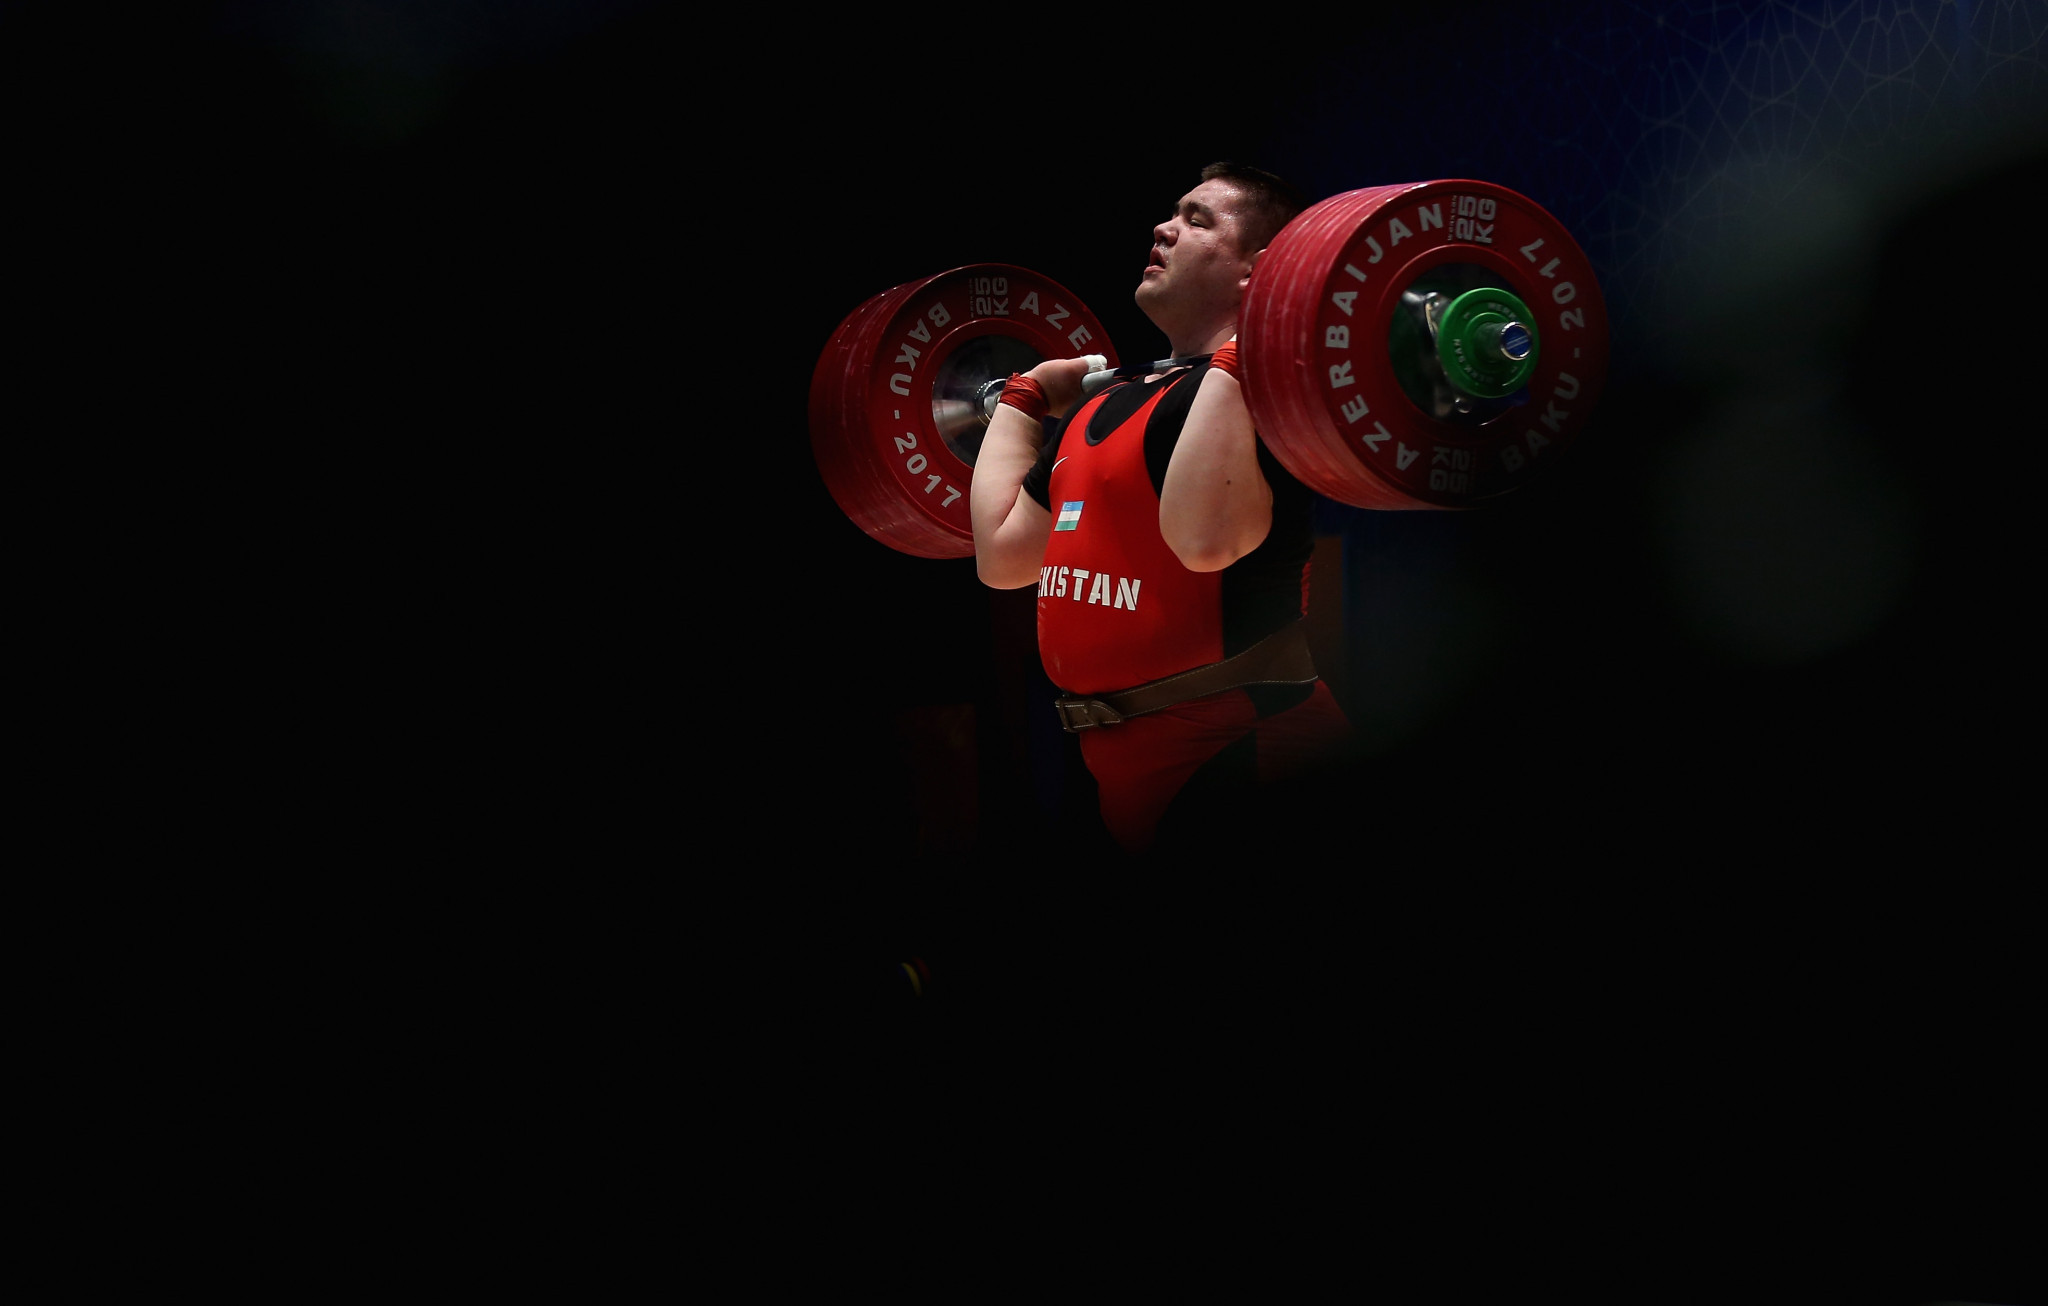 Rustam Djangabaev is provisionally suspended over an anti-doping violation involving a growth hormone ©Getty Images